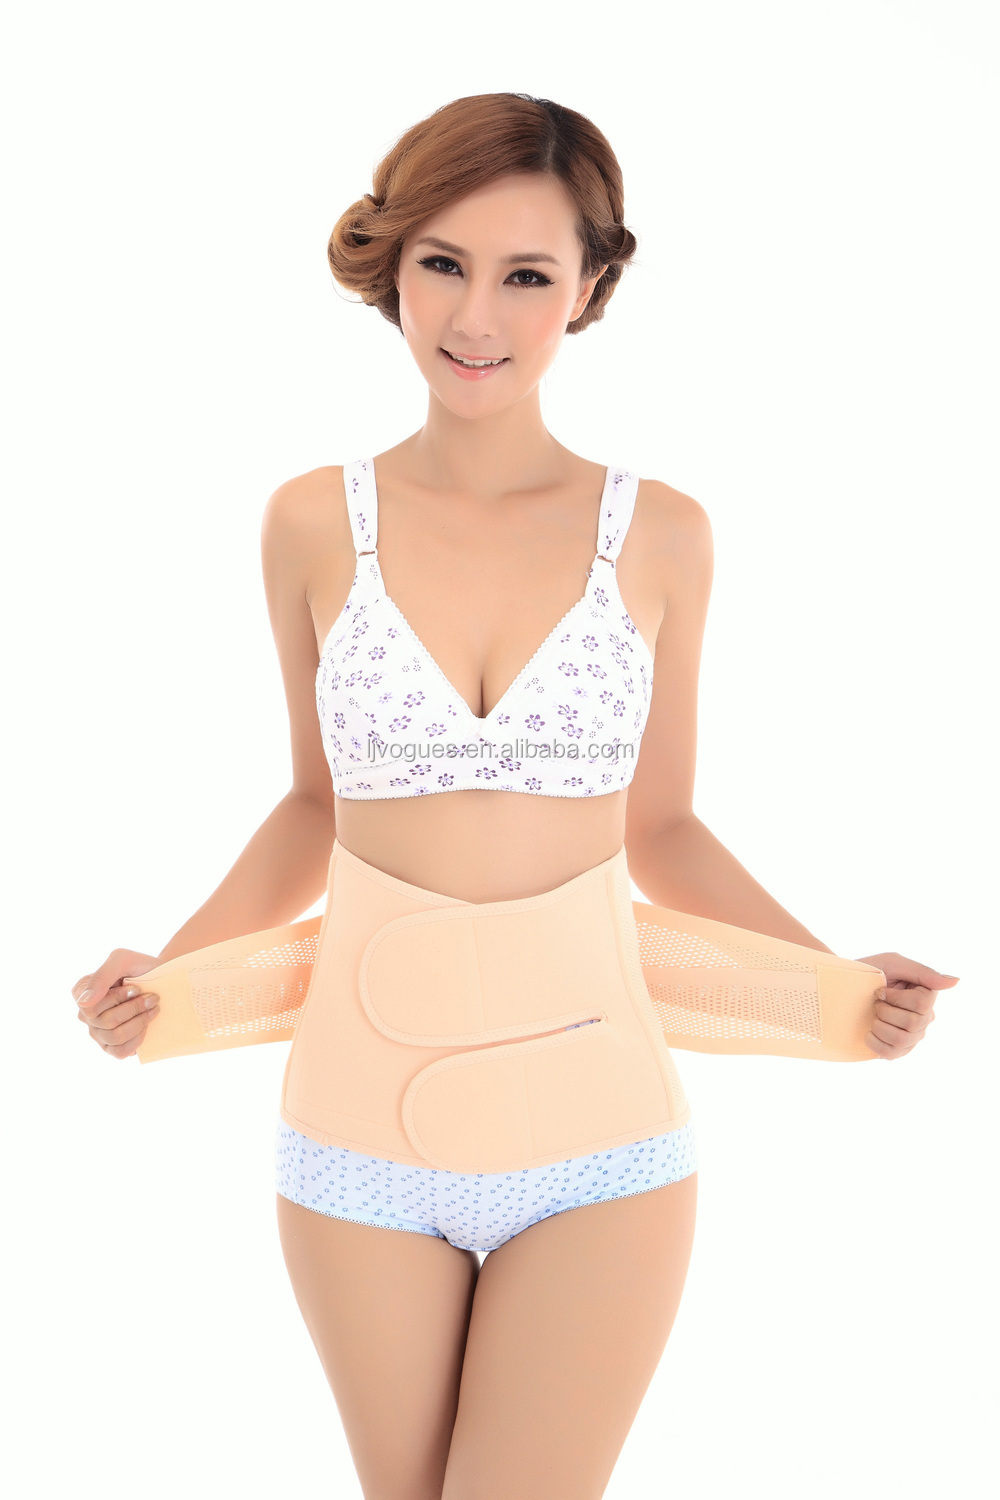 53504289cd7118 pregnancy wrapping tummy after birth waist trainer belts. Hot sale  products. Hot sale in